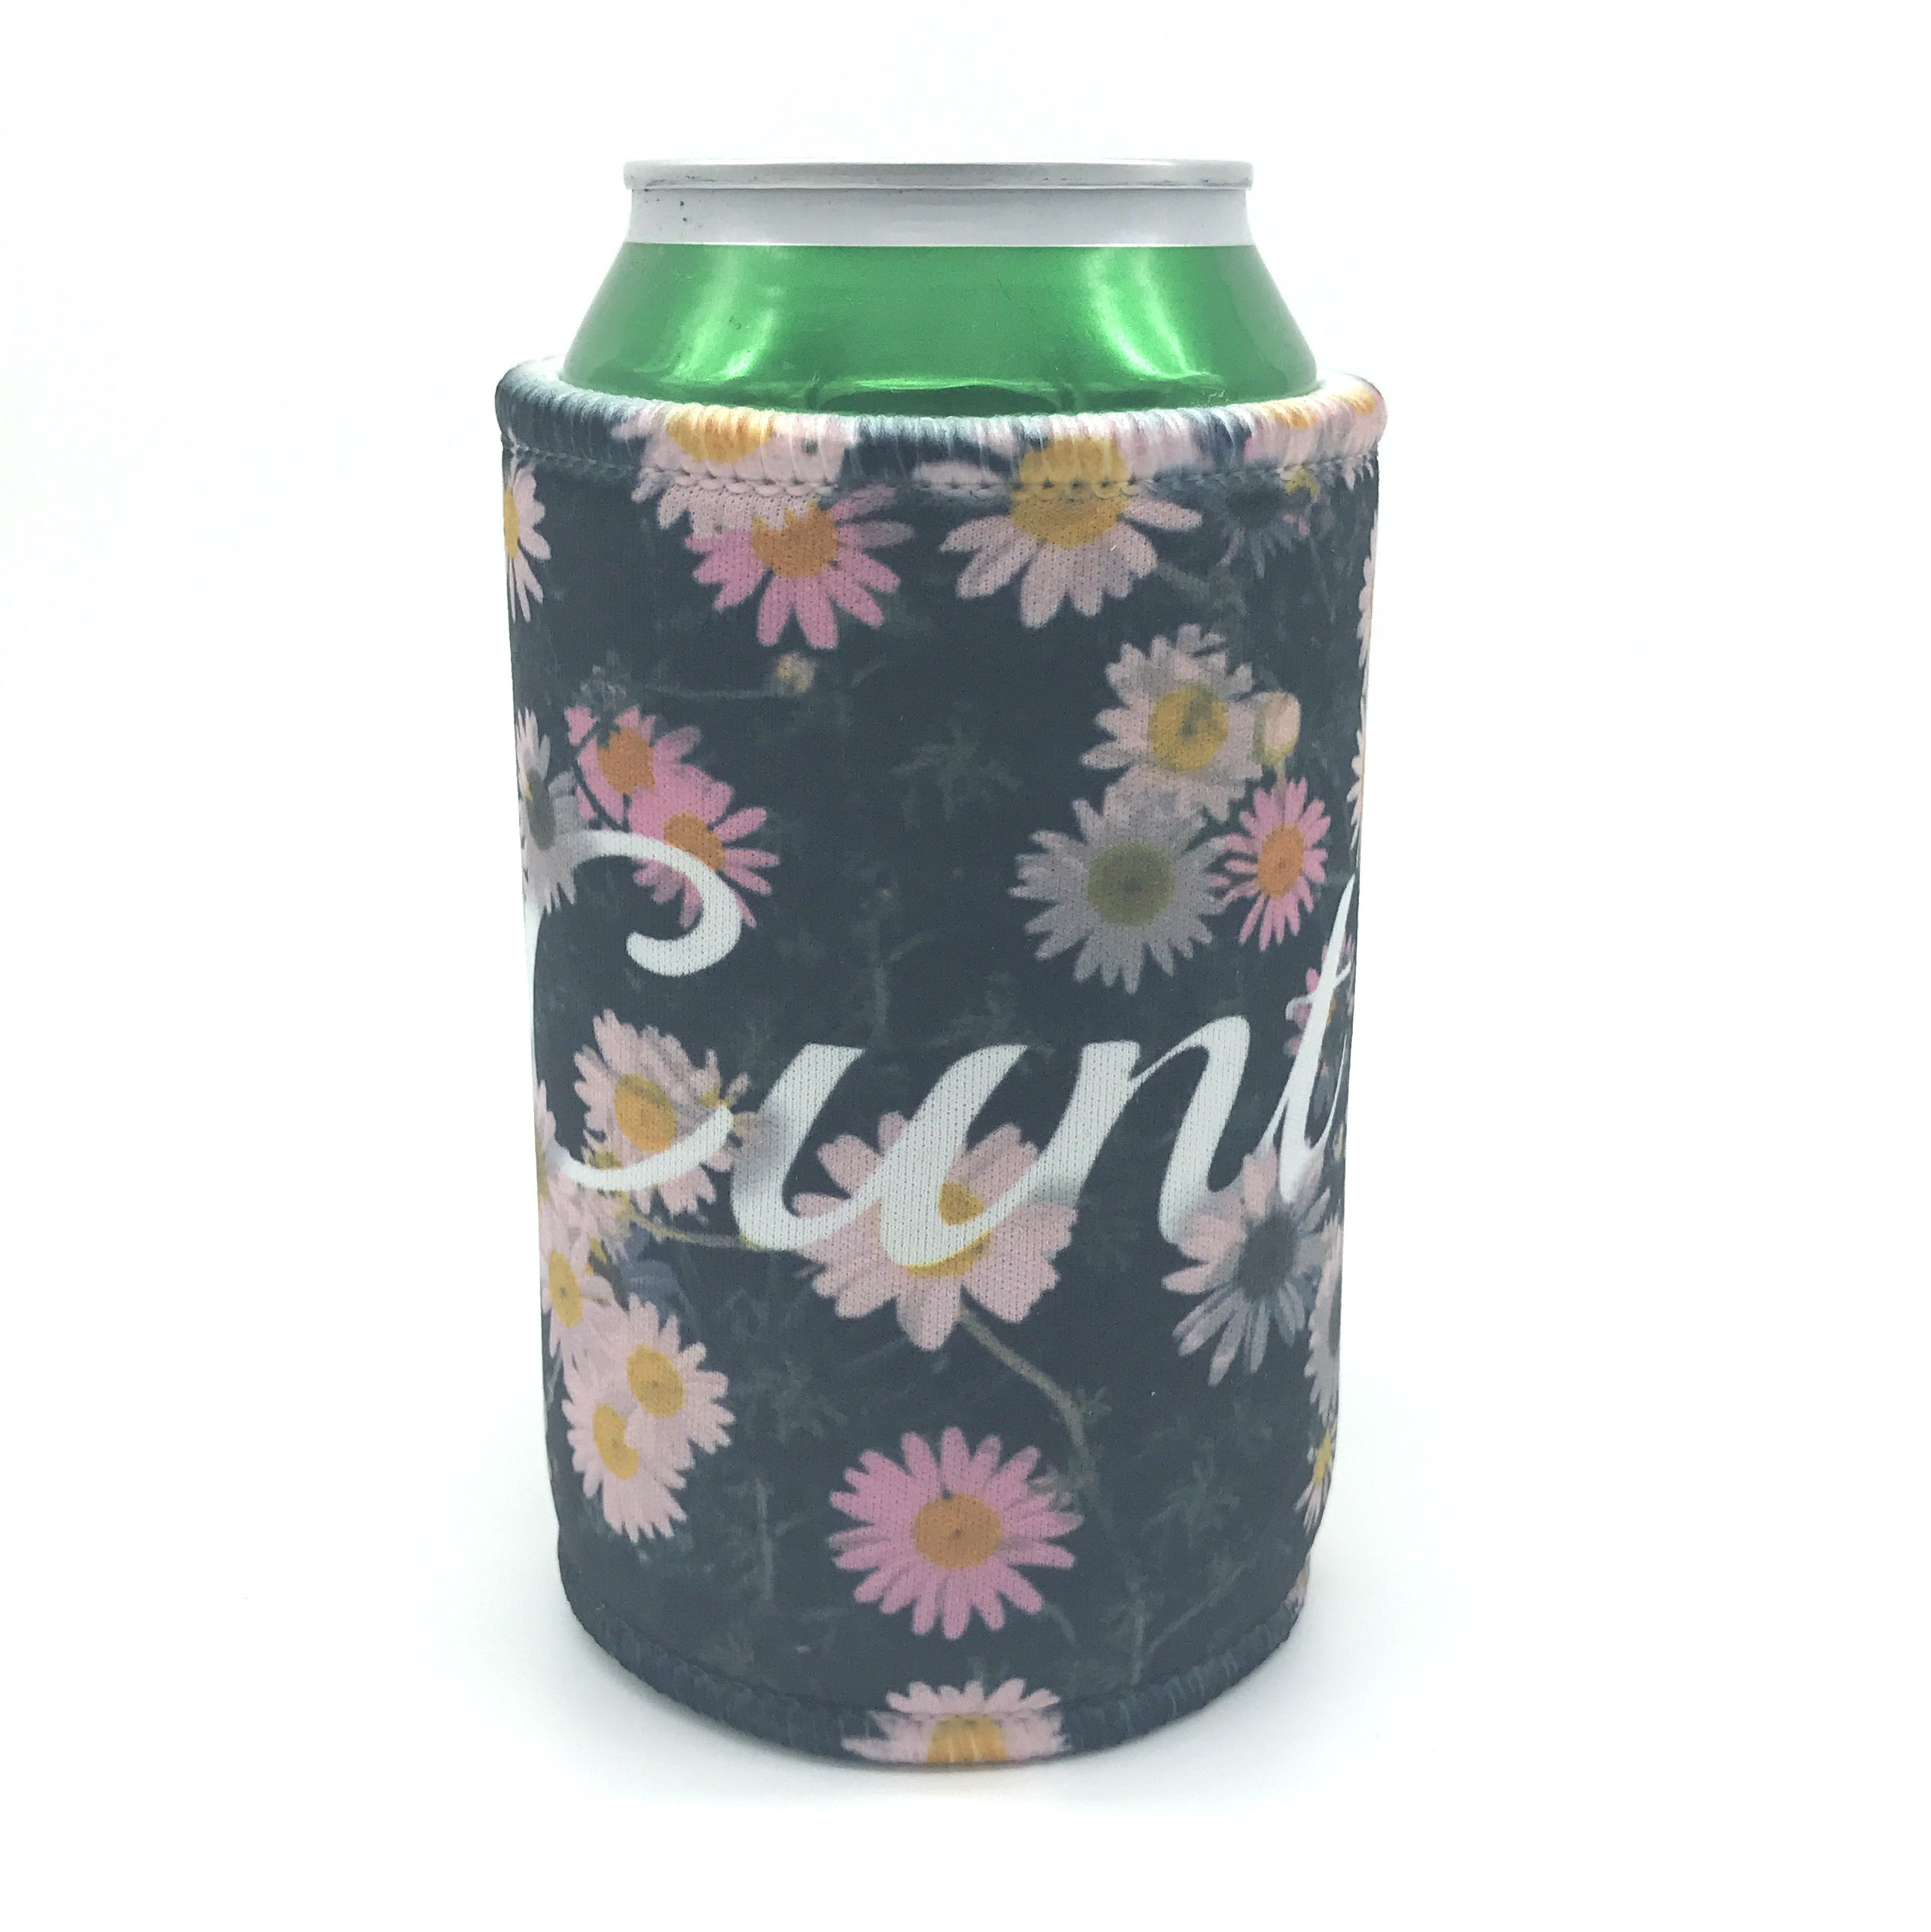 DAISYCUNT STUBBY HOLDER